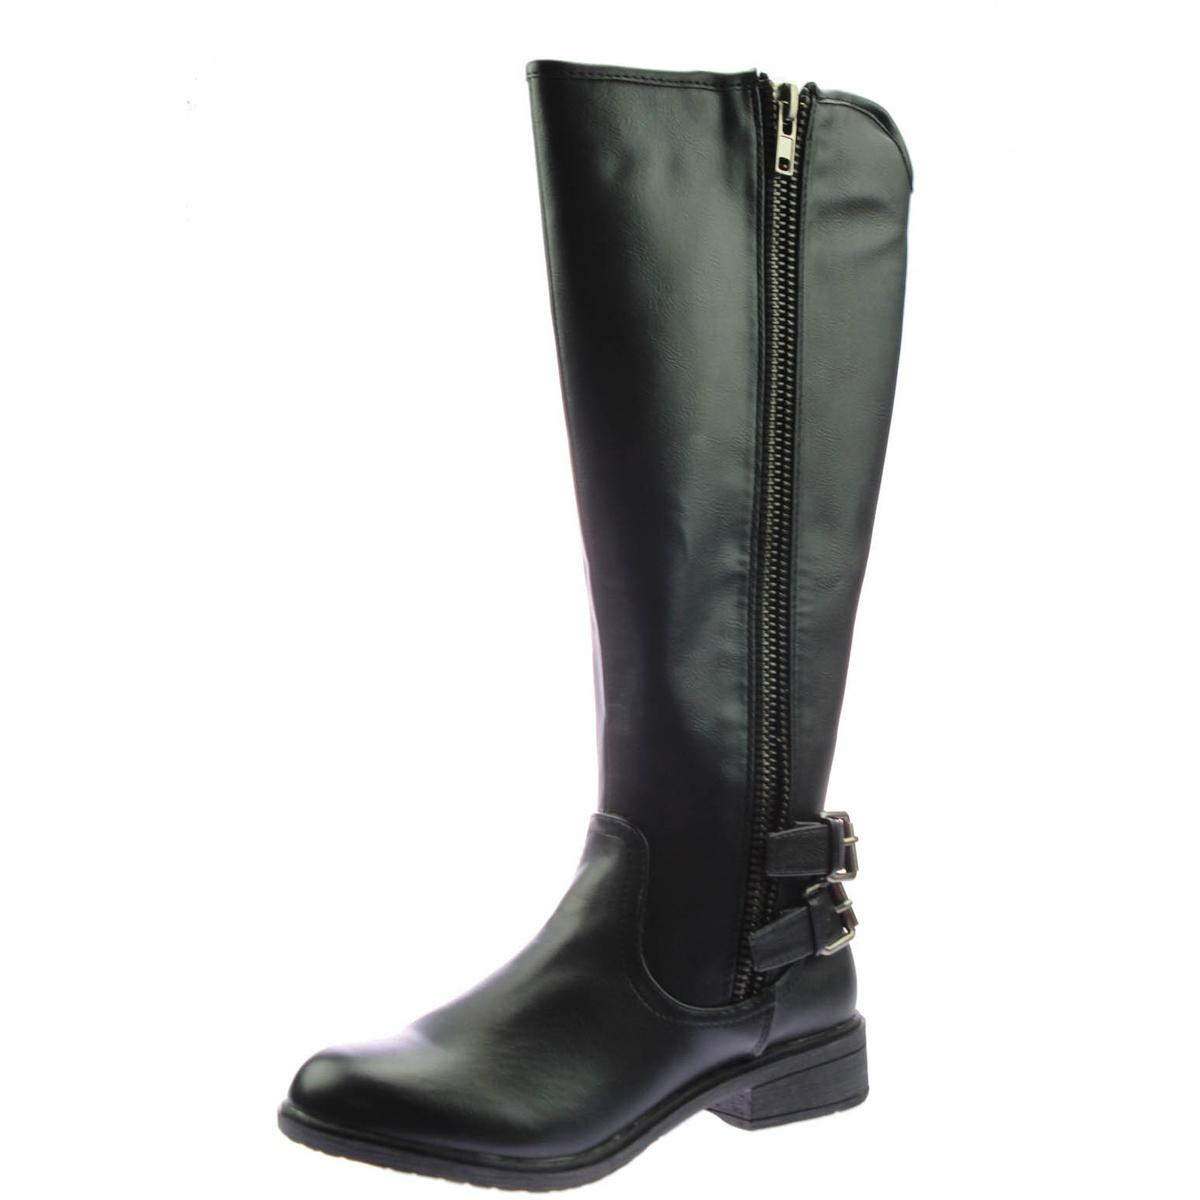 Shop for Report Women's Hanna Buckle Detail Riding Boots. Free Shipping on orders over $45 at janydo.ml - Your Online Shoes Outlet Store! Get 5% in rewards with Club O! -